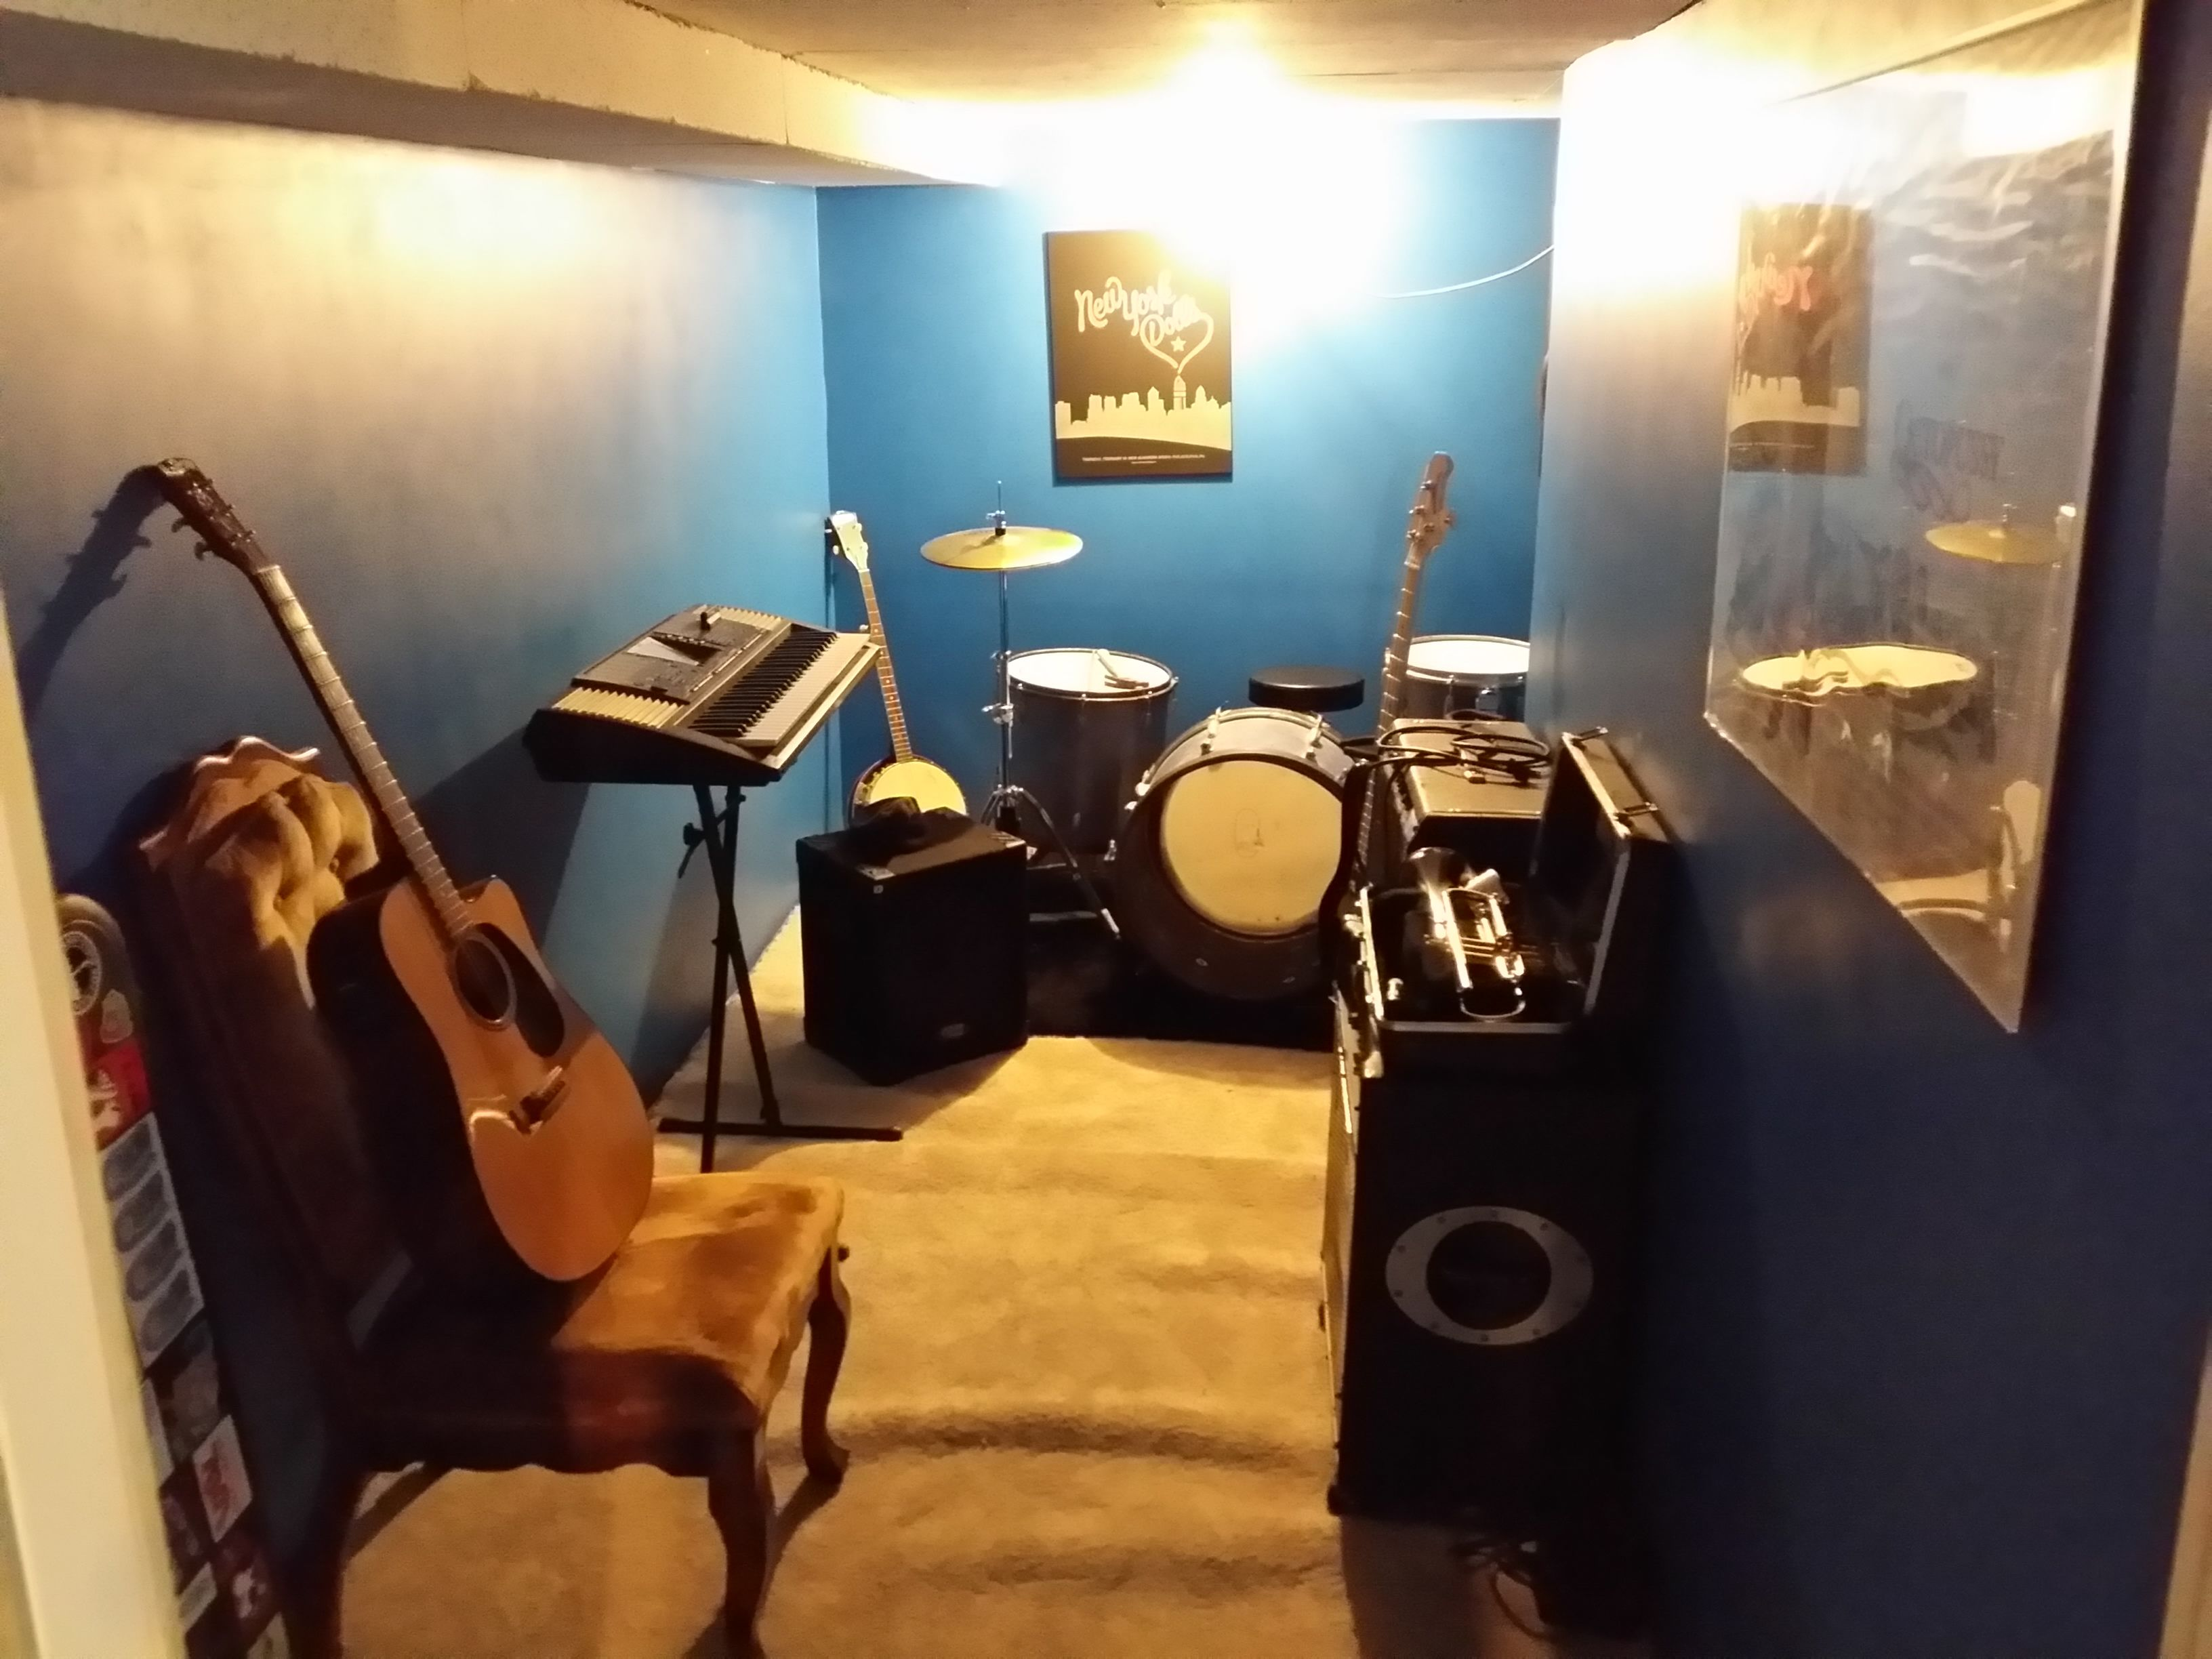 How To Build Your Own Soundproof Rehearsal Room When You Have No